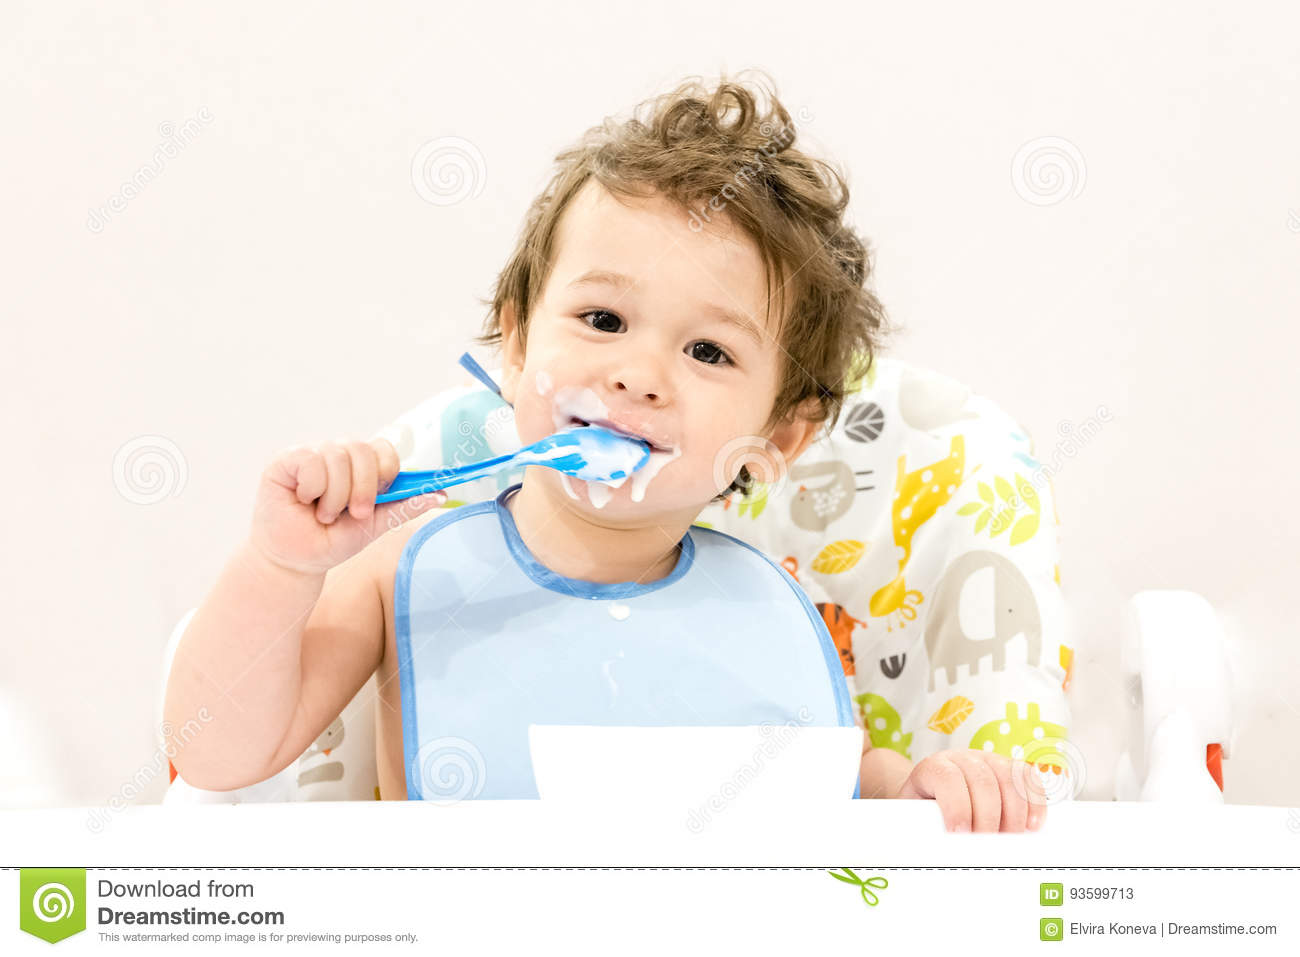 Cute toddler boy with blue spoon is yogurt. the child smiles. funny kid in a baby seat. beautiful 2 year old little boy eating Bre